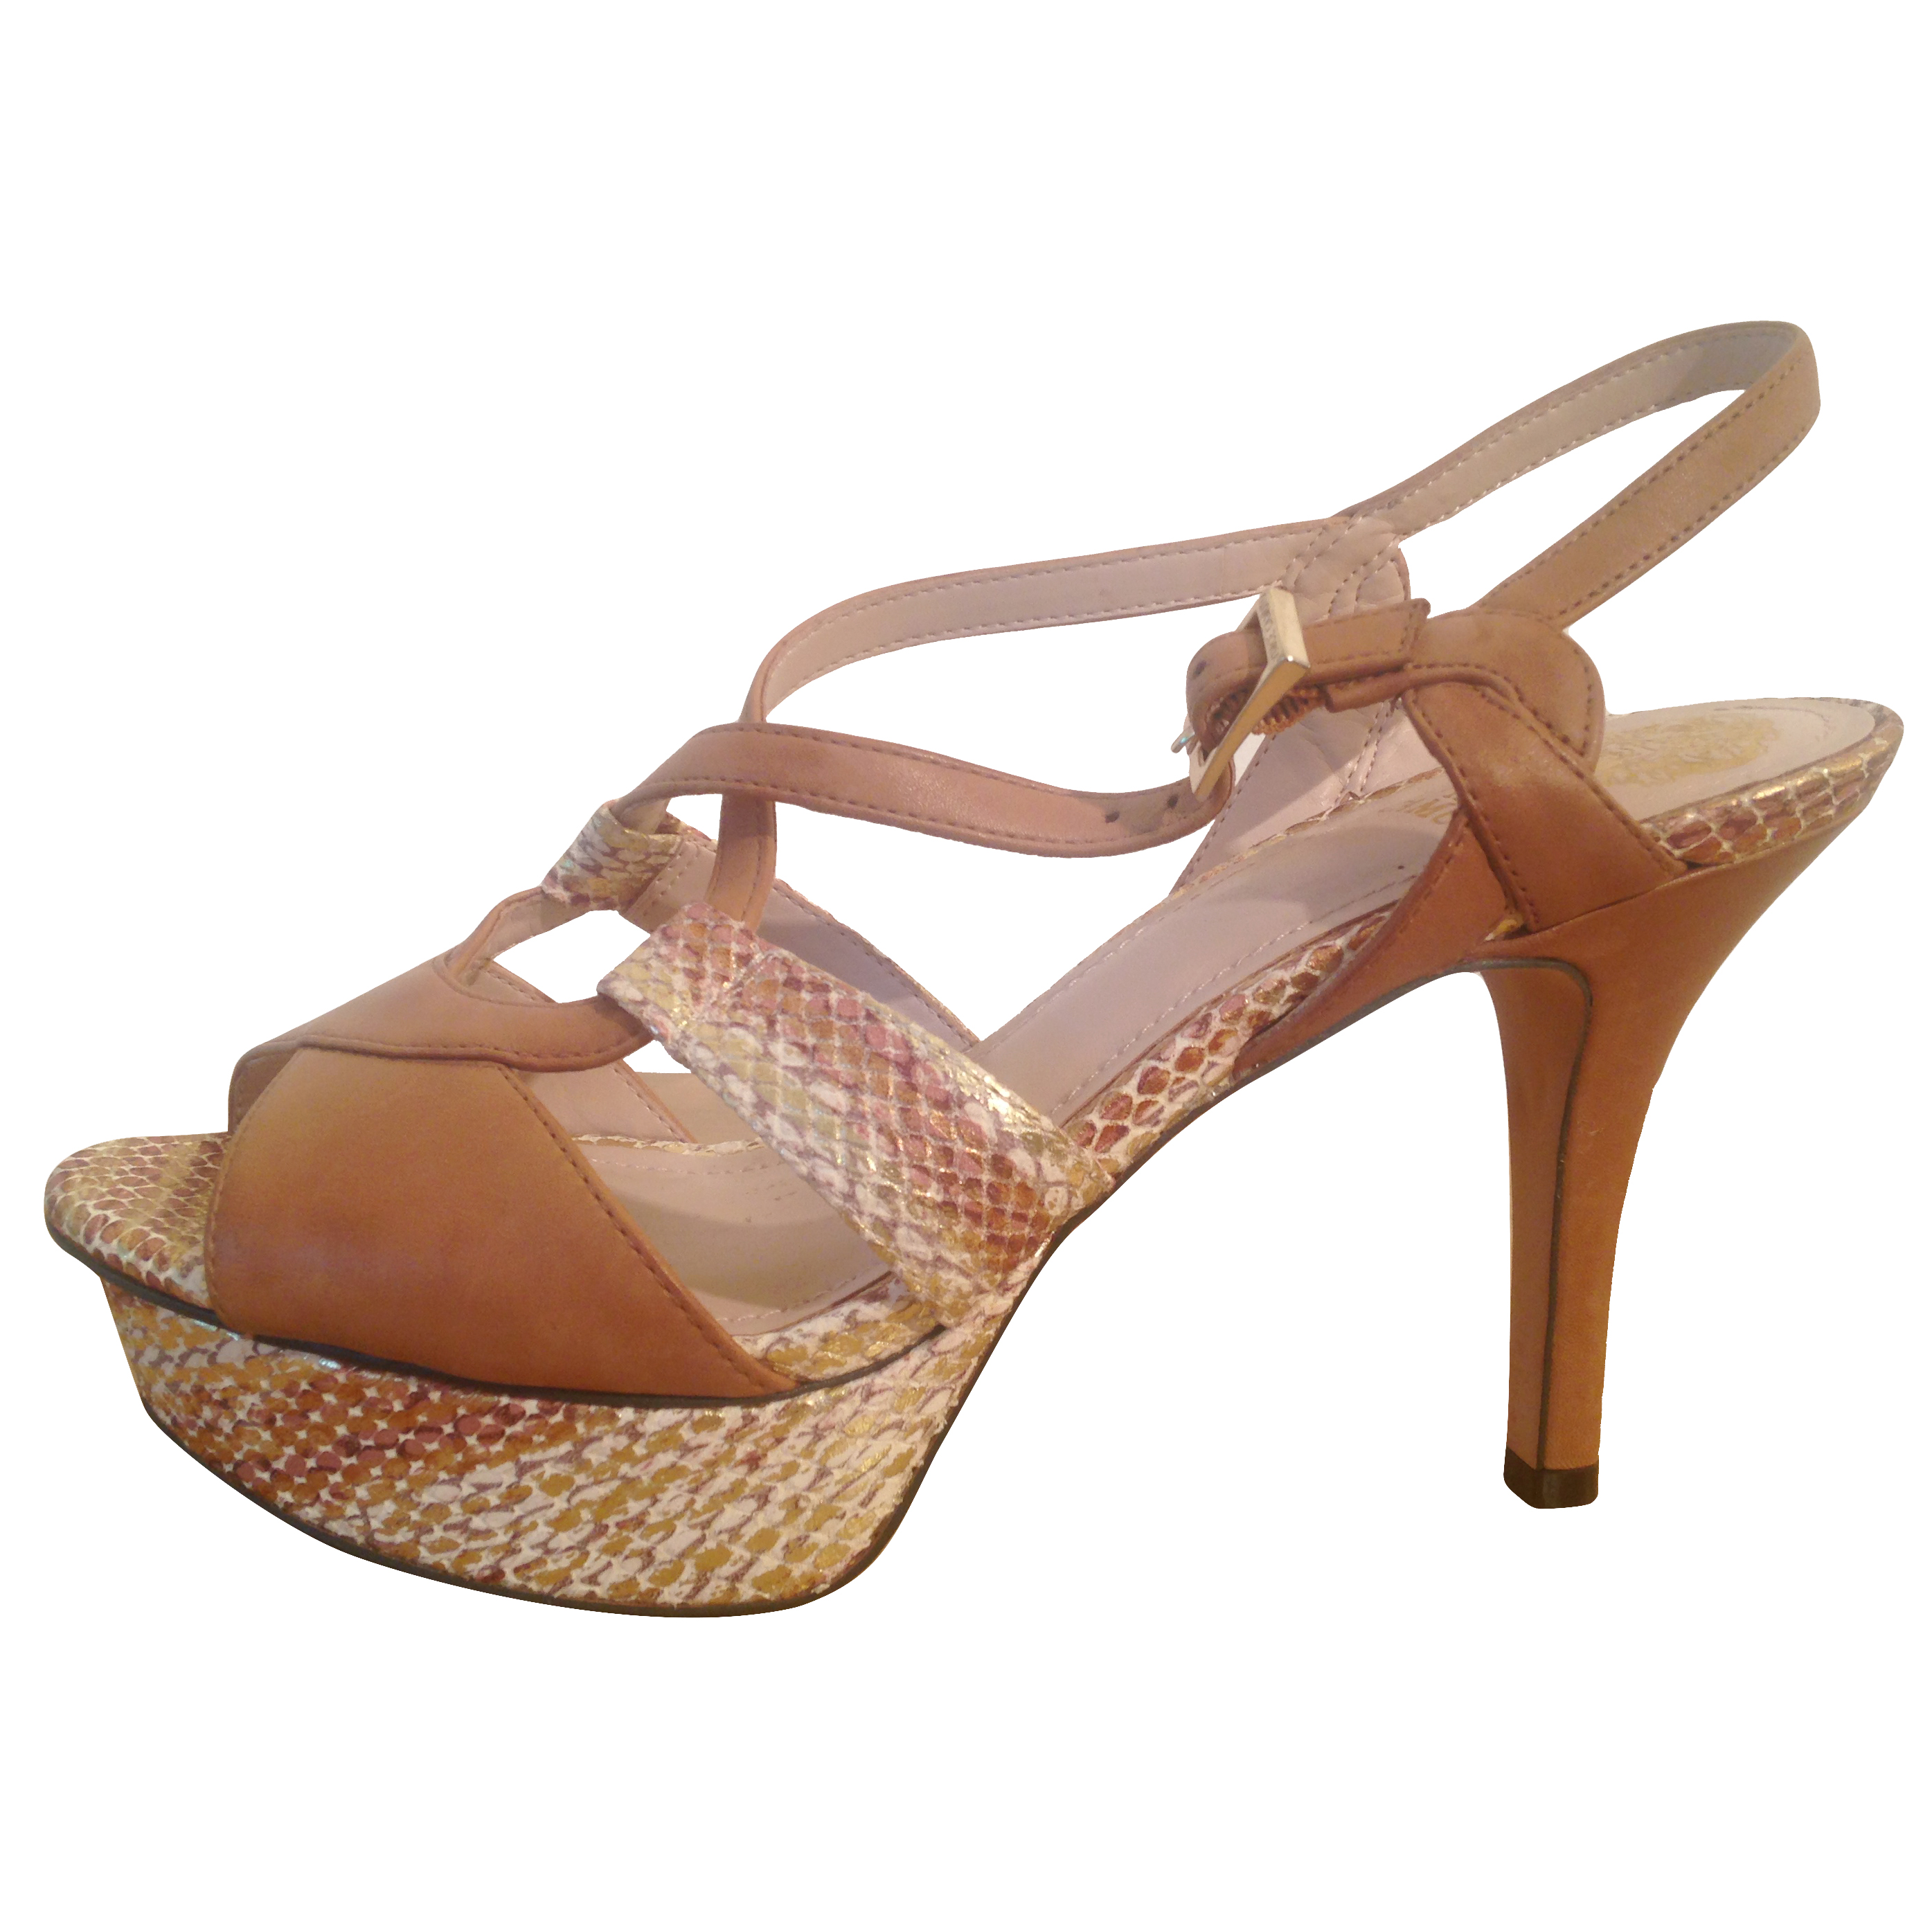 Vince Camuto tan leather high heels with snakeskin detail